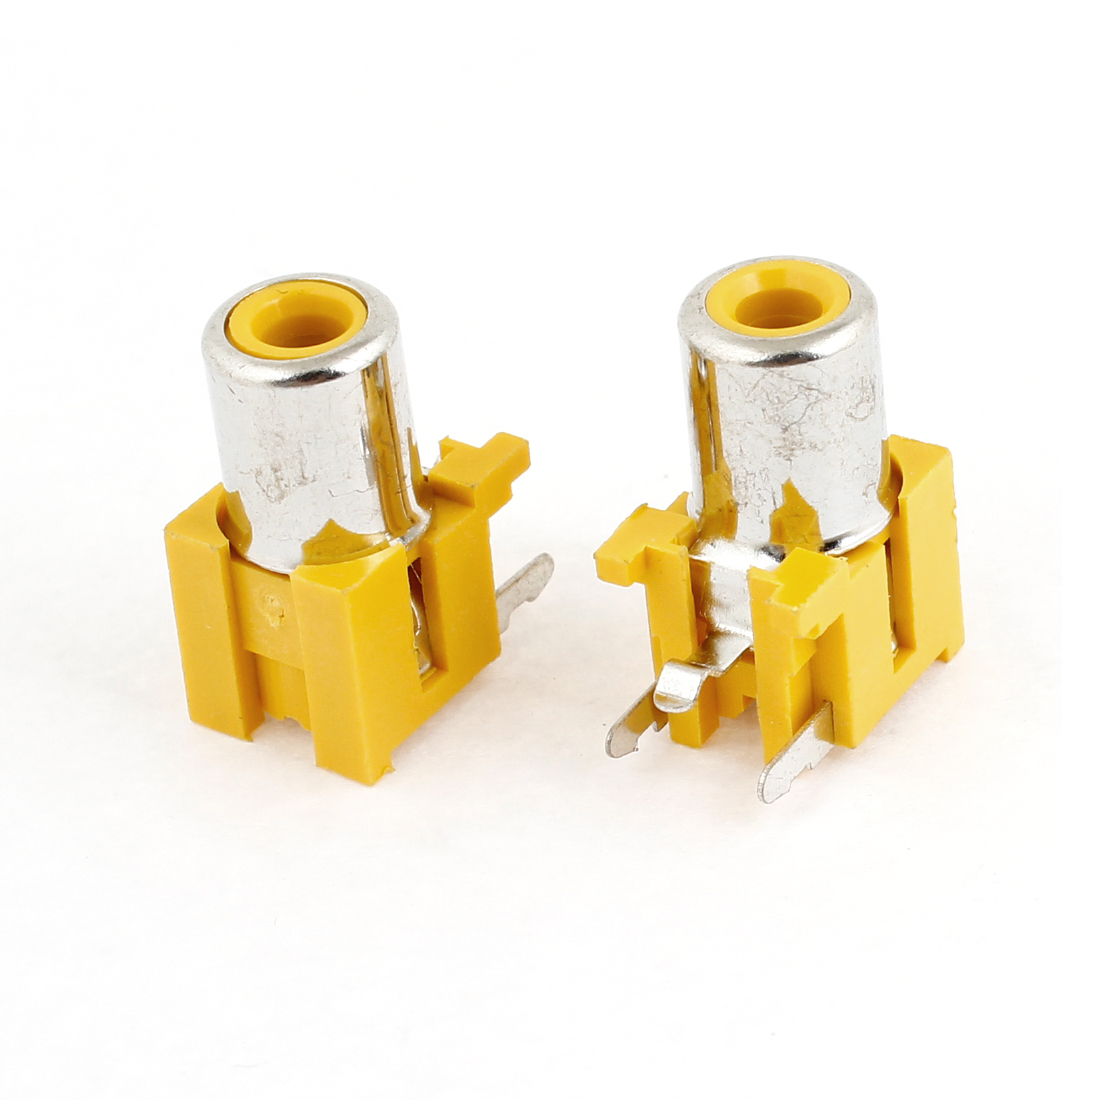 2 Pcs PCB Mount 3 Terminals Female 3.5mm Audio Jack Socket Yellow